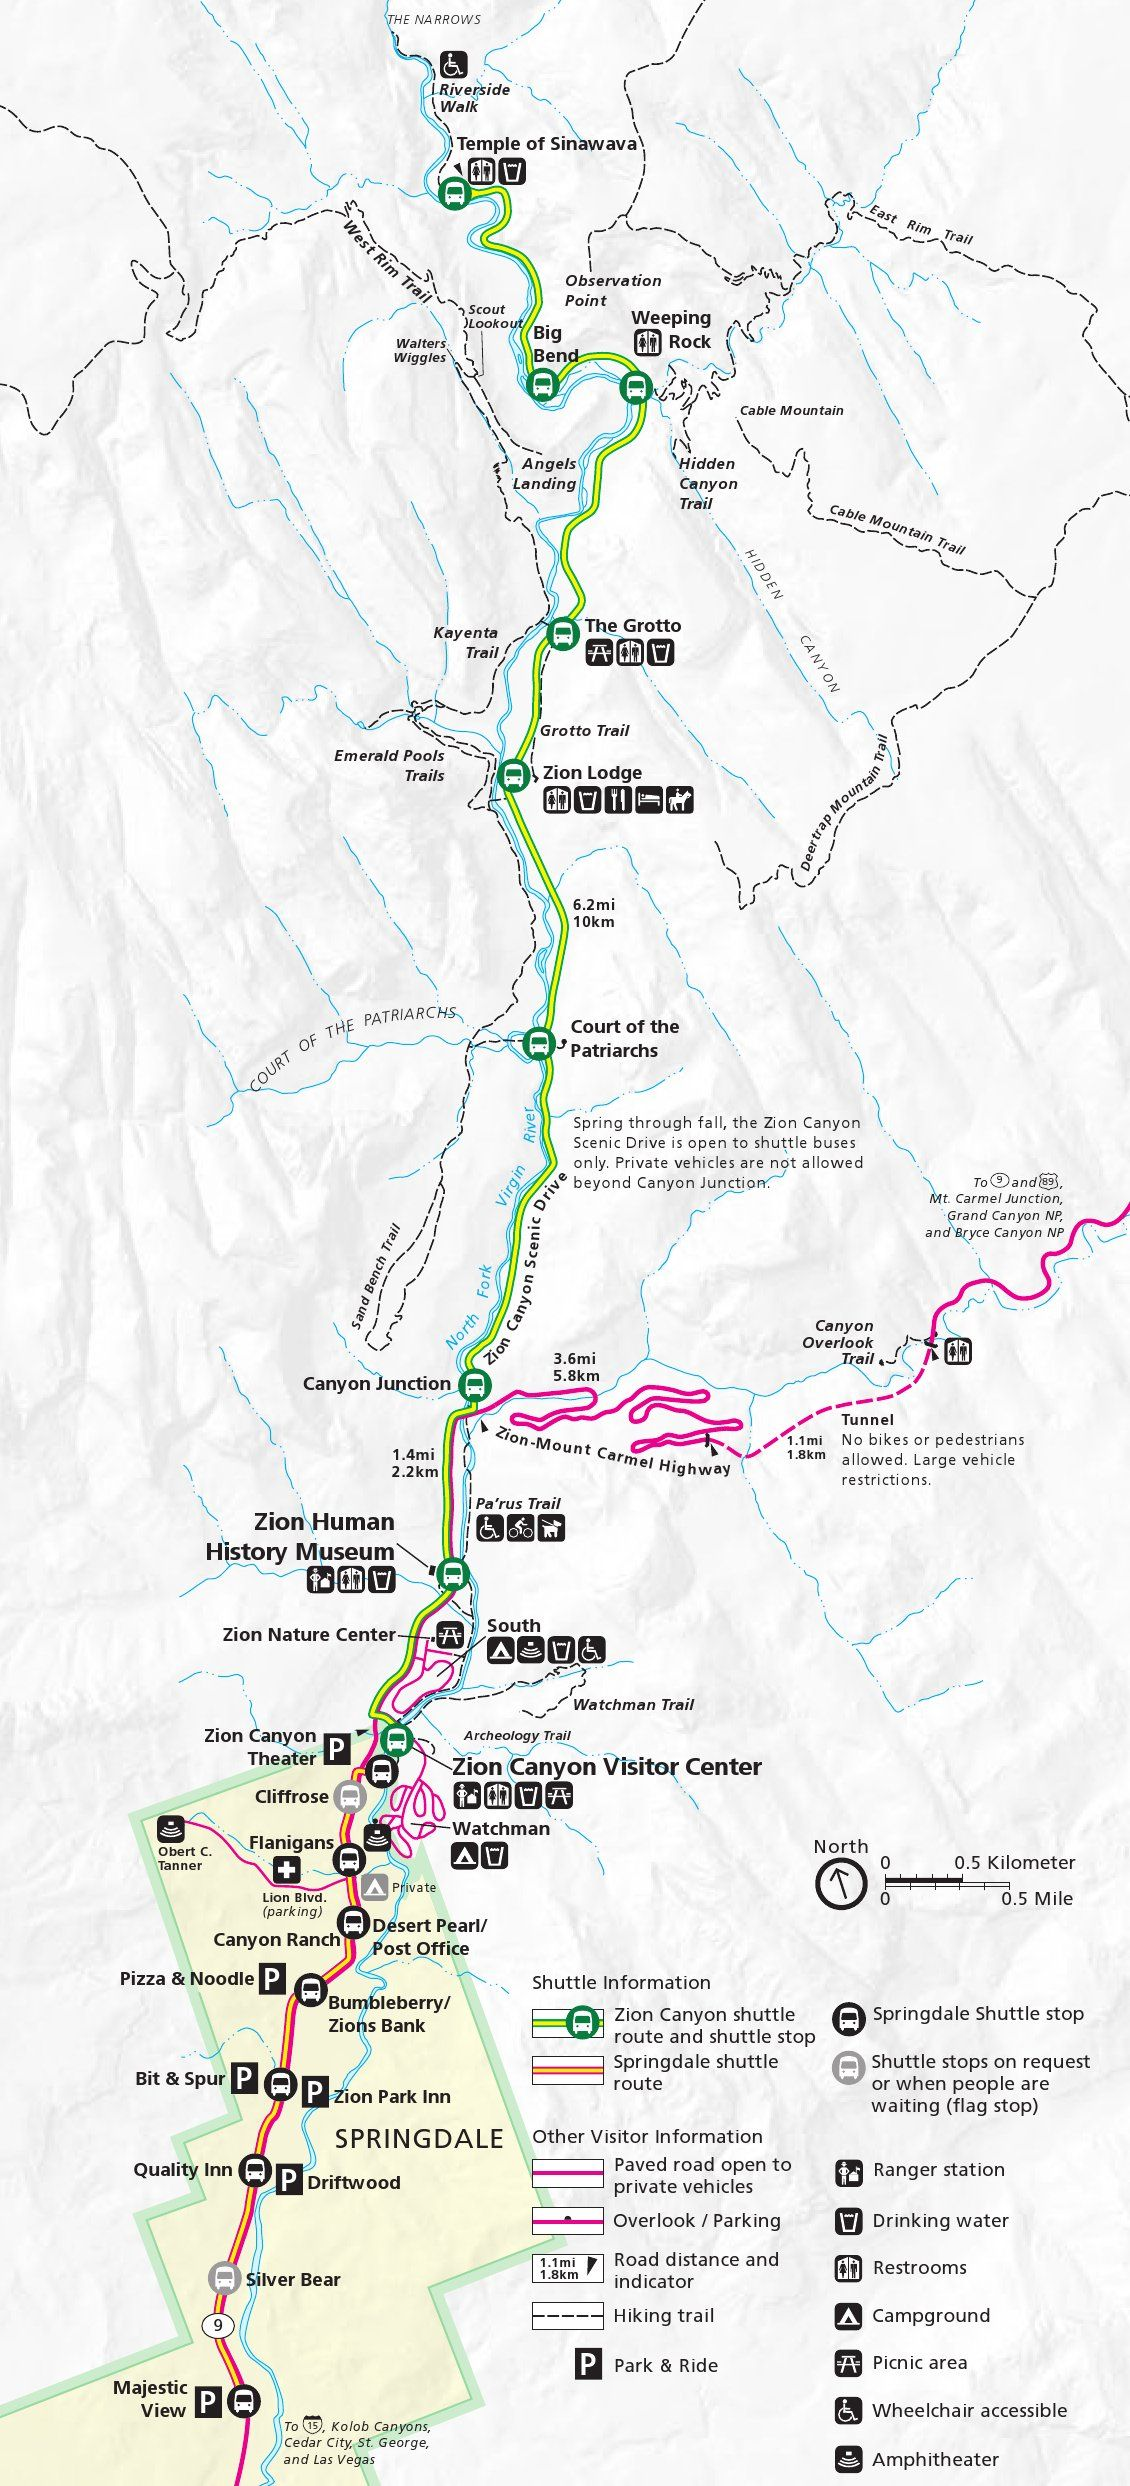 Pin by National Park Maps on Zion National Park Maps Pinterest